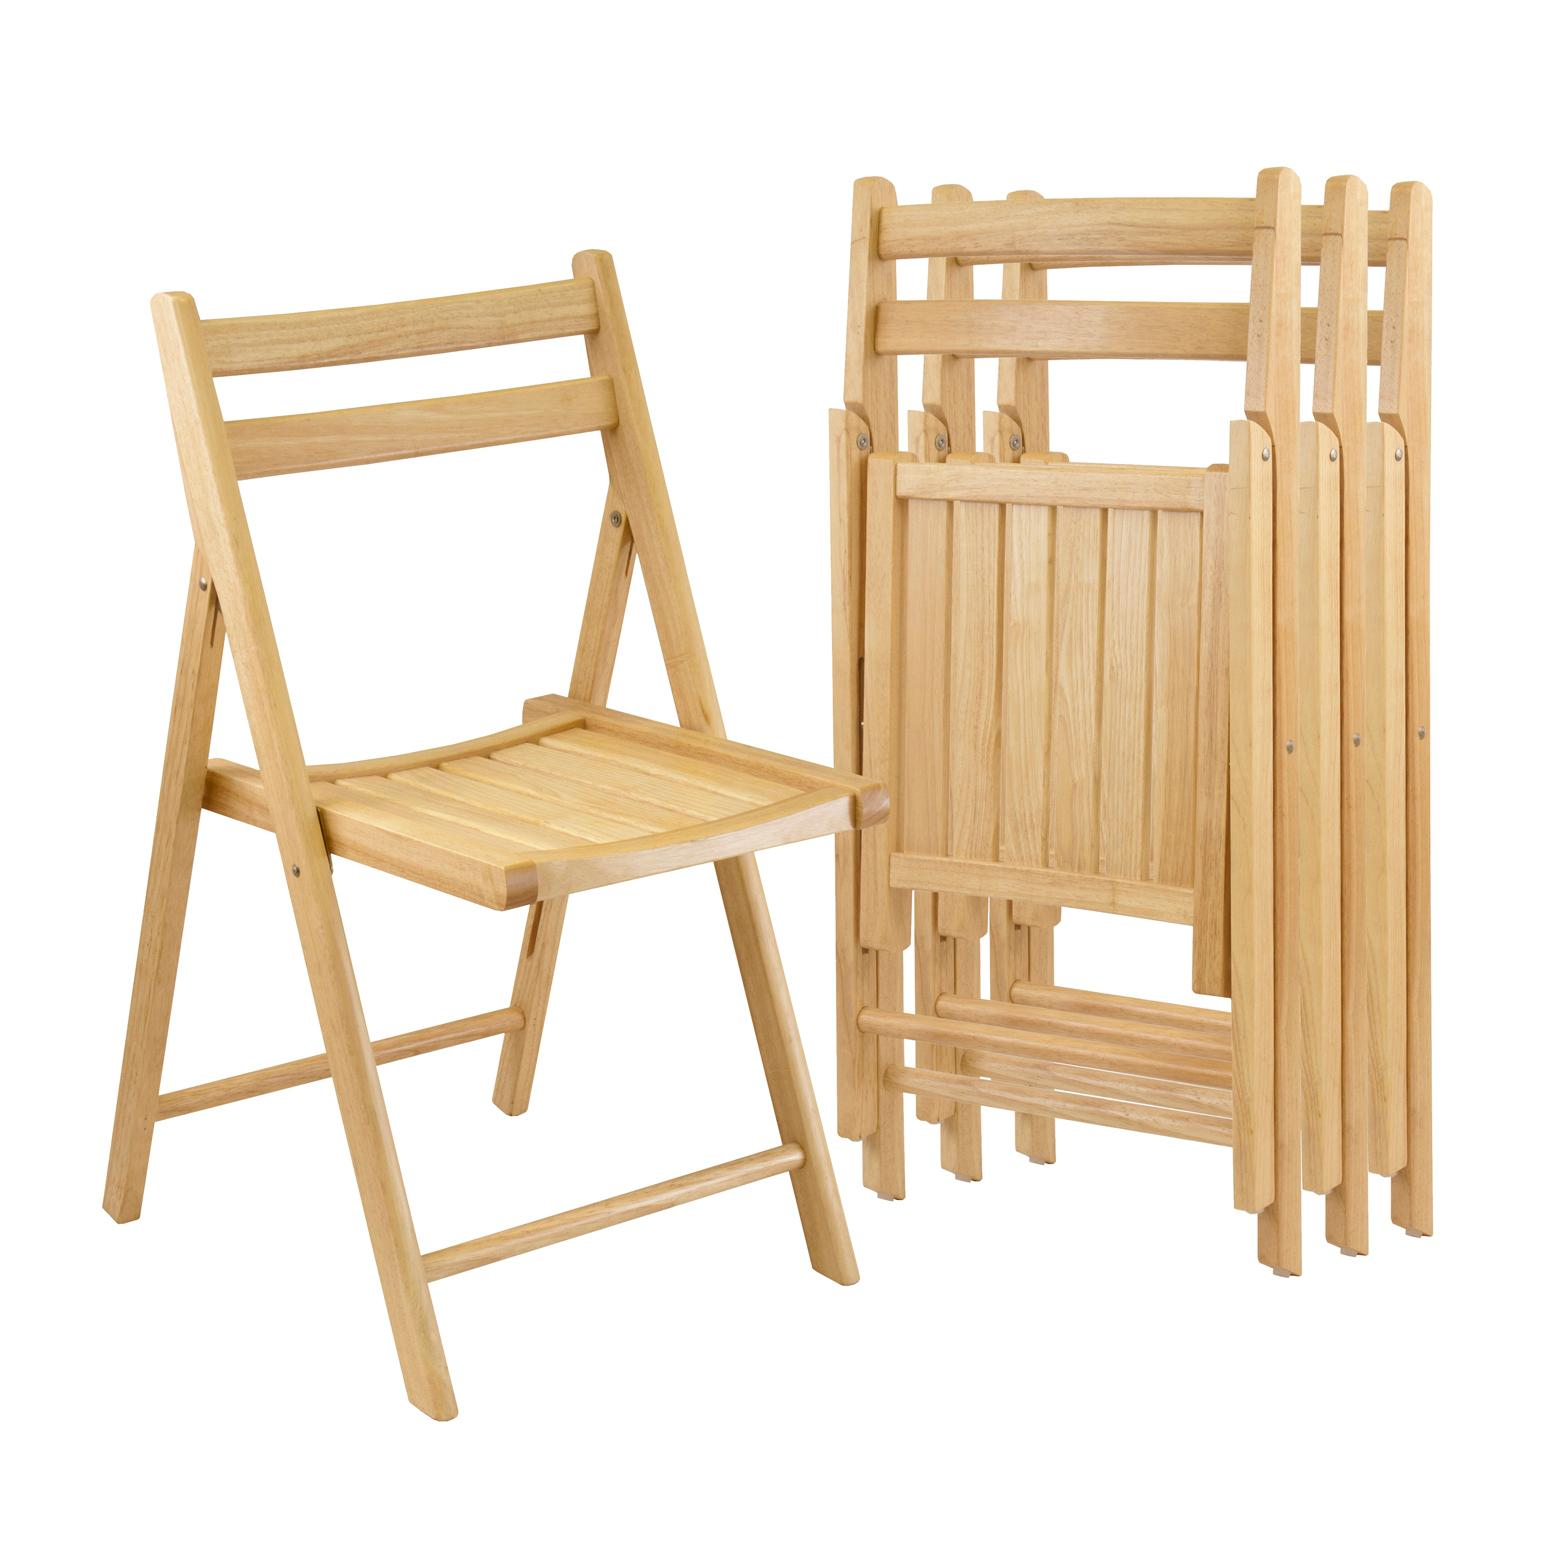 Amazon Winsome Wood Folding Chairs Natural Finish Set of 4 Chairs